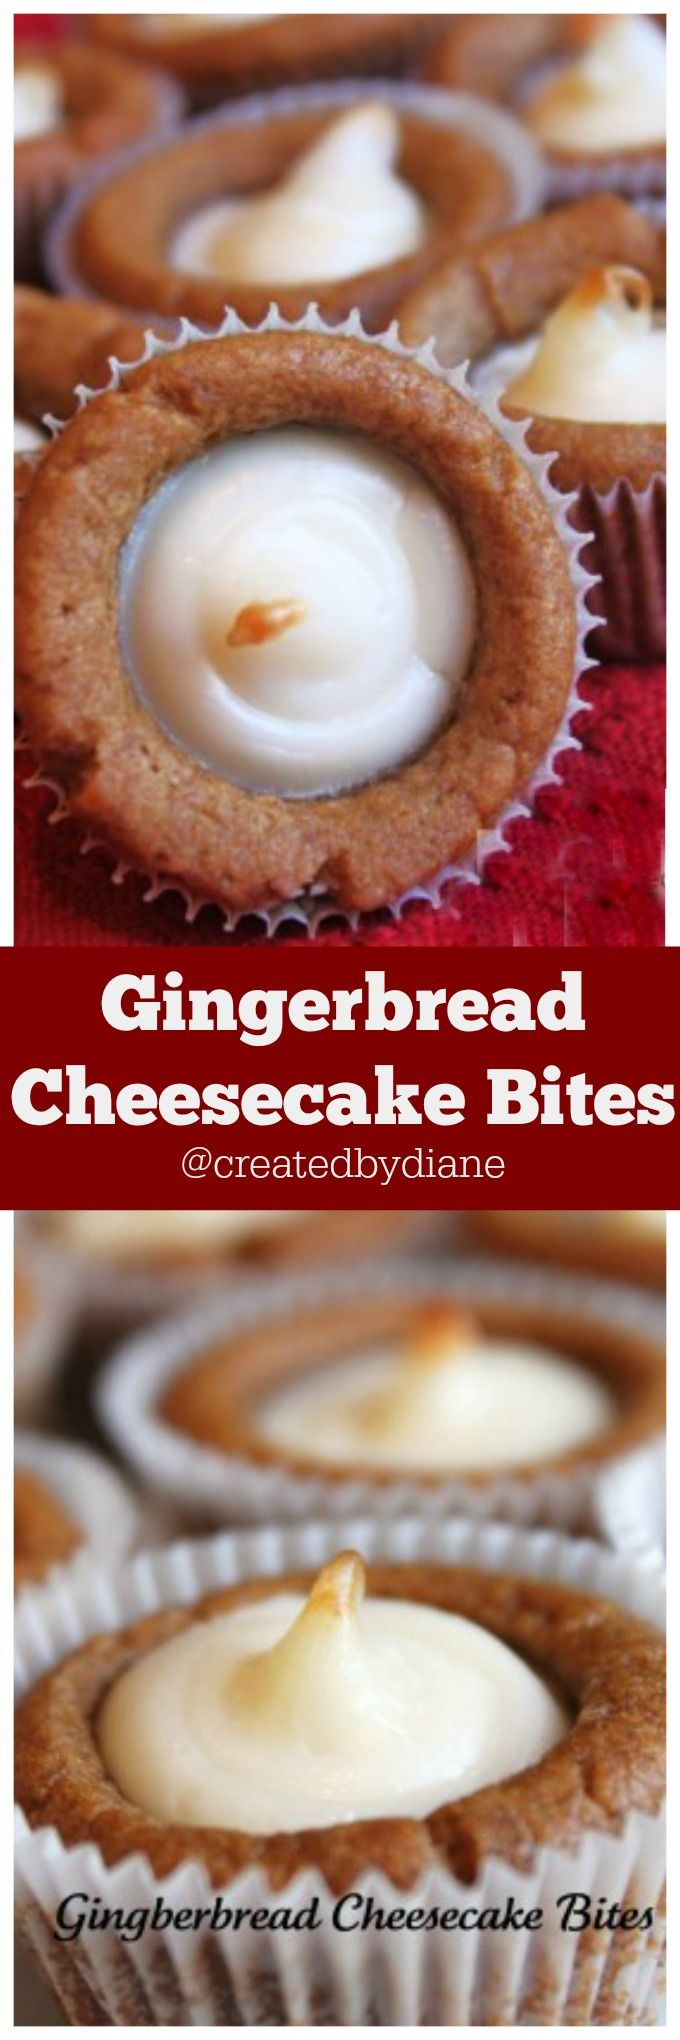 Gingerbread Cheesecake Bites these may look like cupcakes, but they are cookie bites, gingerbread cookie dough filled with a cream cheese filling and baked to perfection these are a must make for the holidays. perfect to bring to work, holiday party etc @createdbydiane